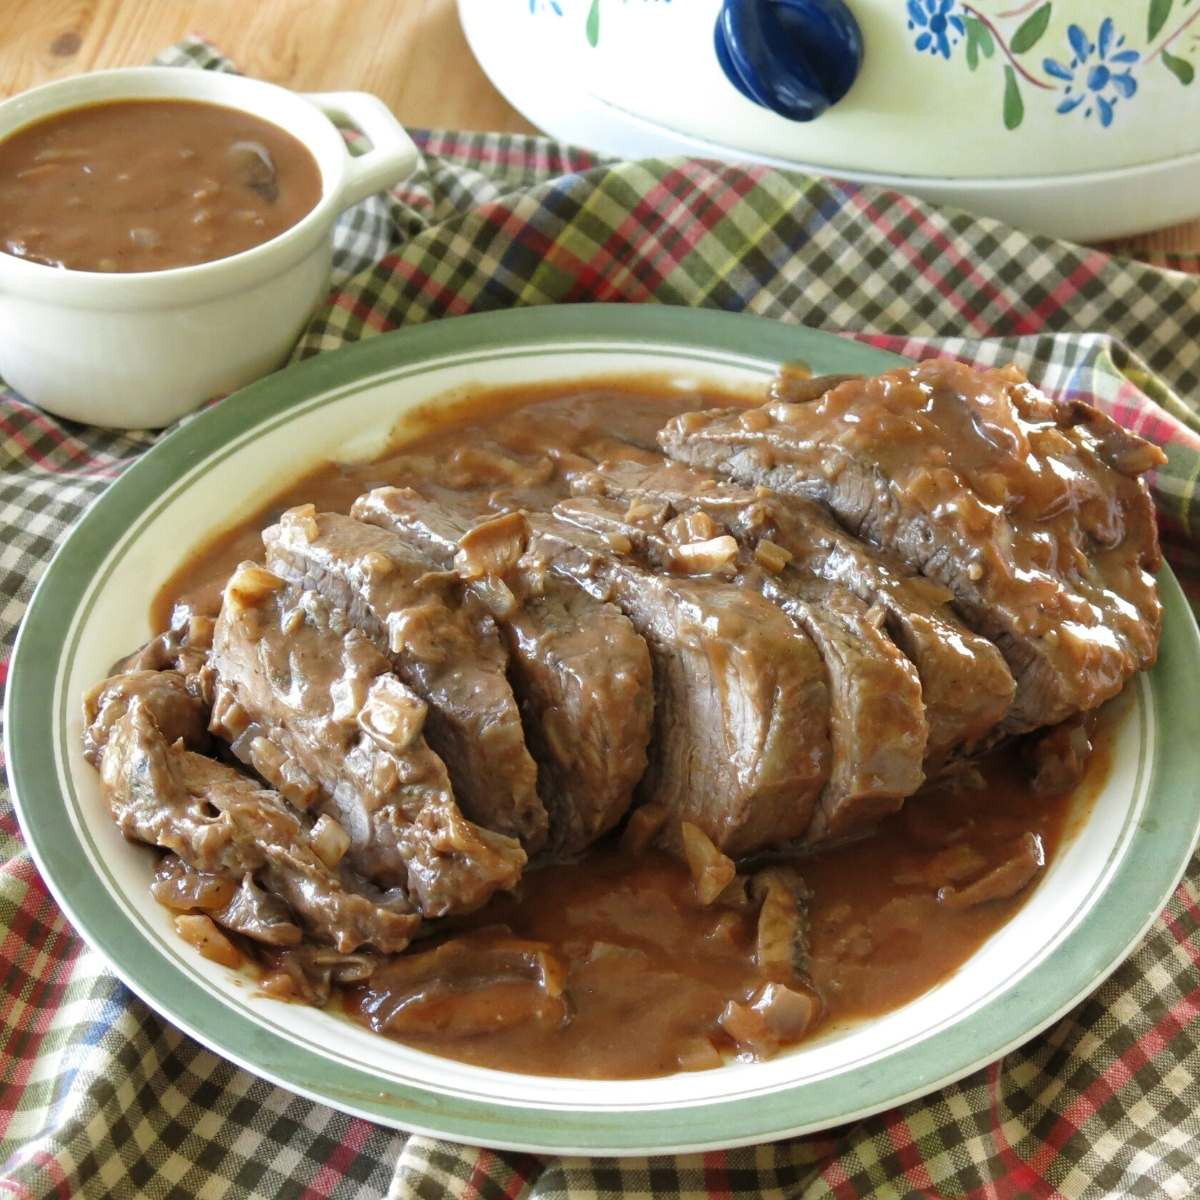 Sliced Beef Shoulder Roast with red wine mushroom sauce poured over the top.